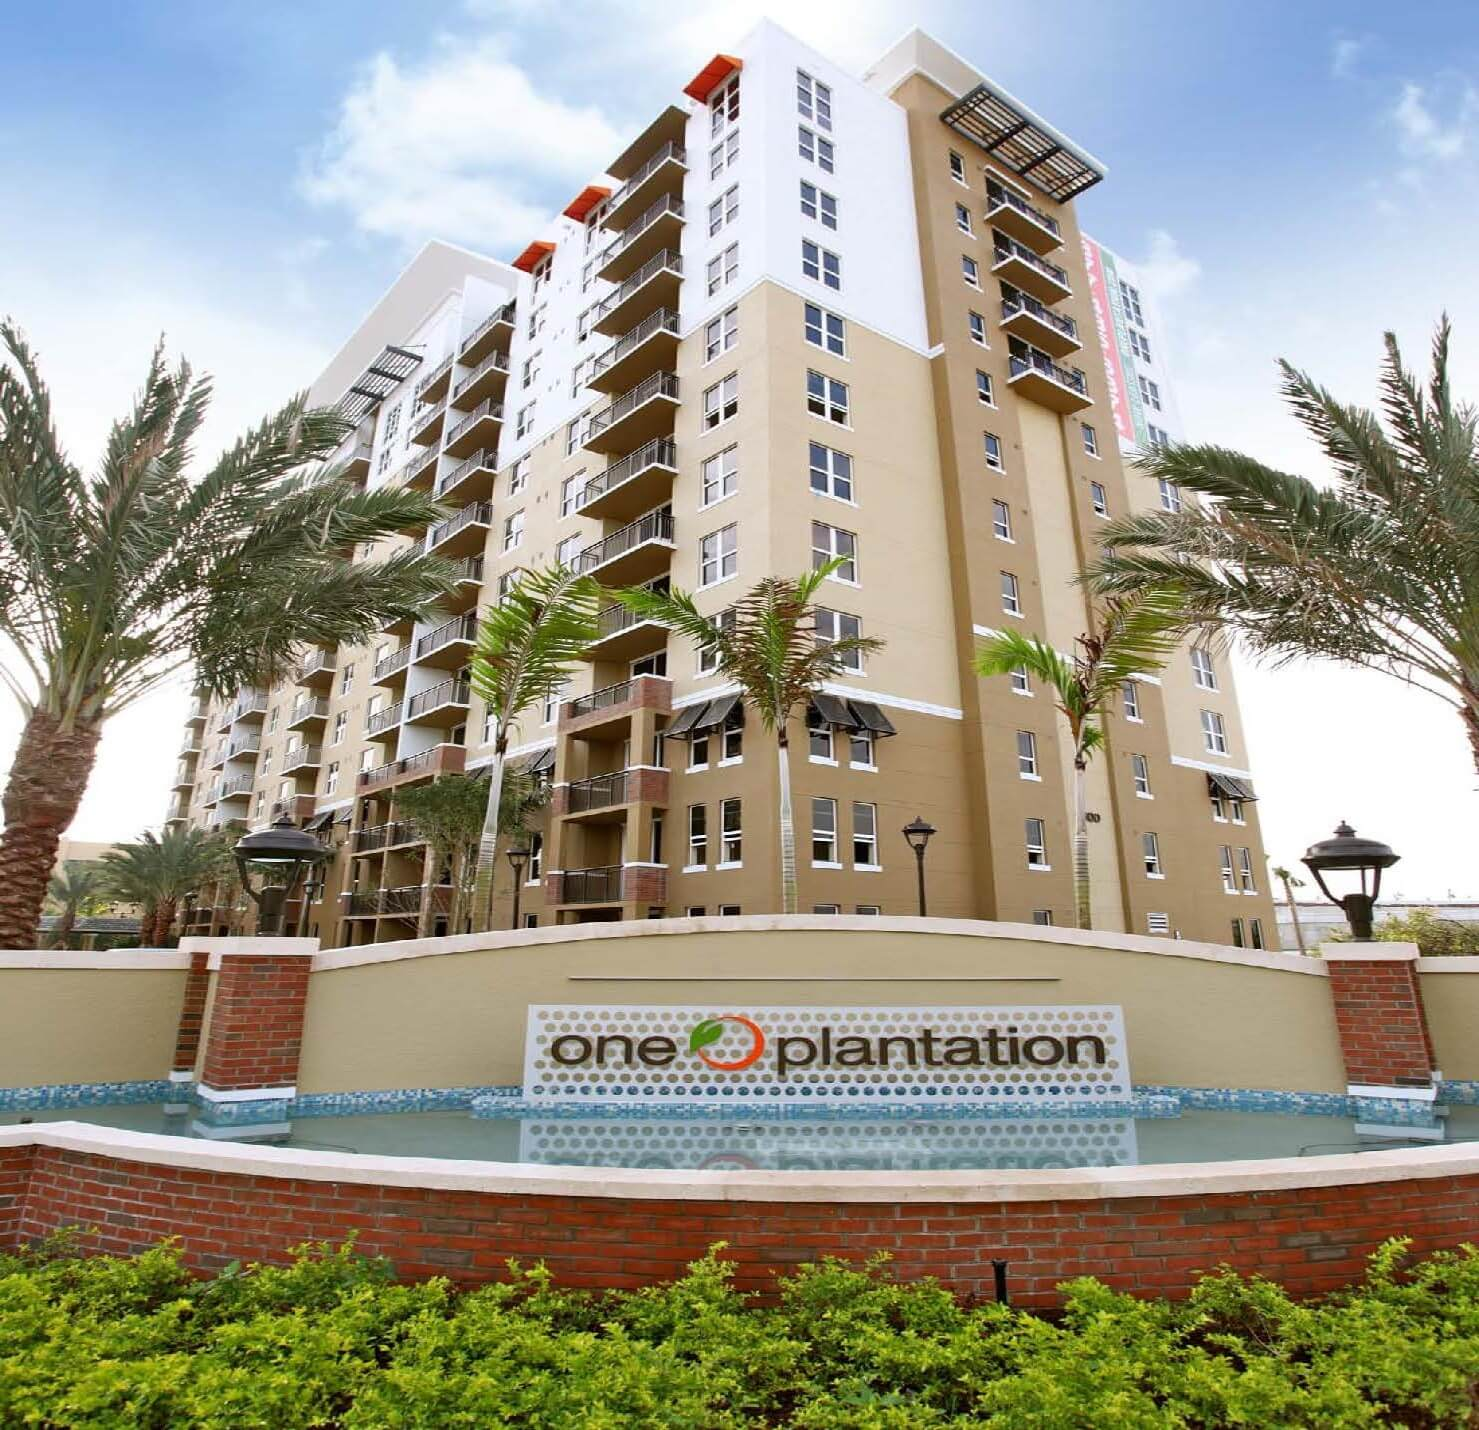 One Plantation Apartments And Retail Center Awarded NAIOP